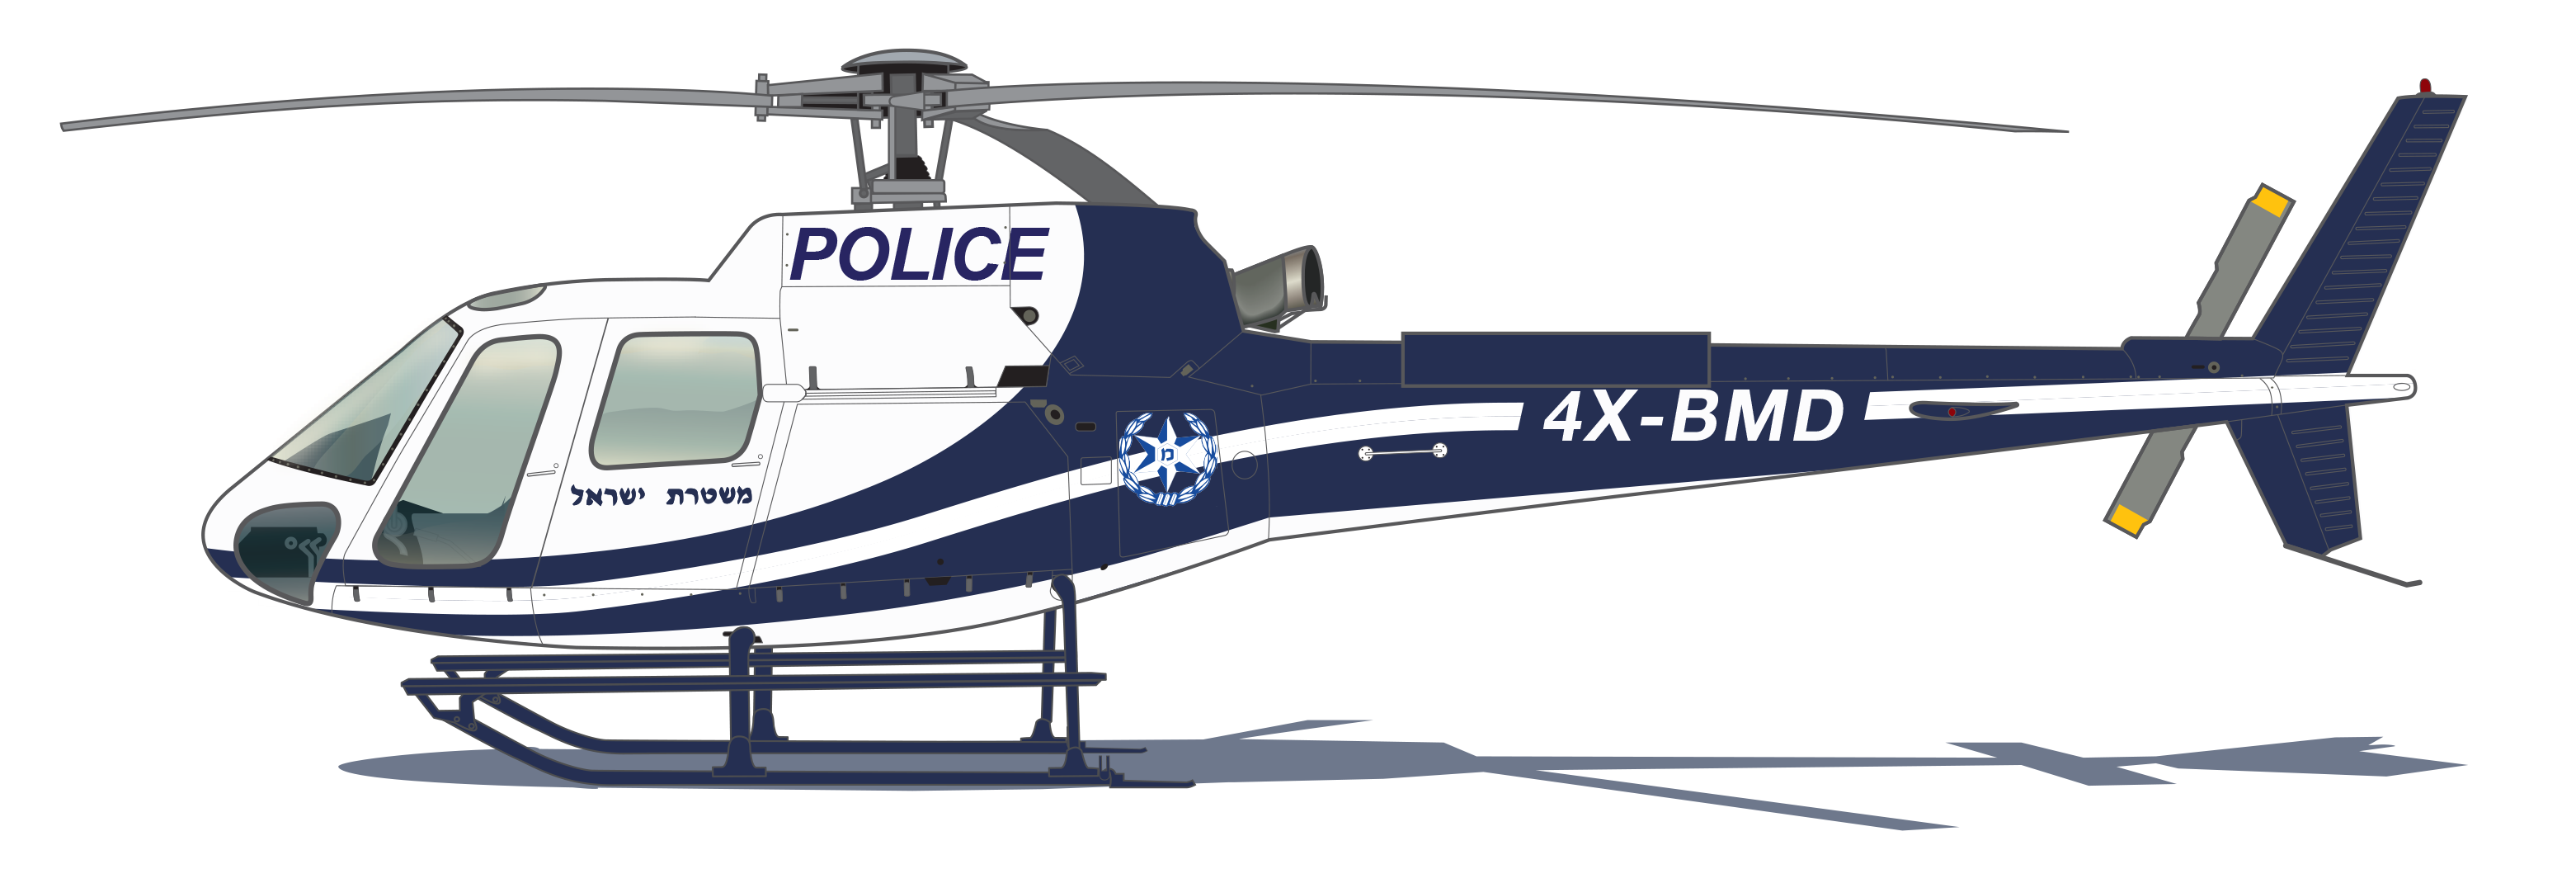 Police clipart police helicopter Download helicopter Tags: Download free